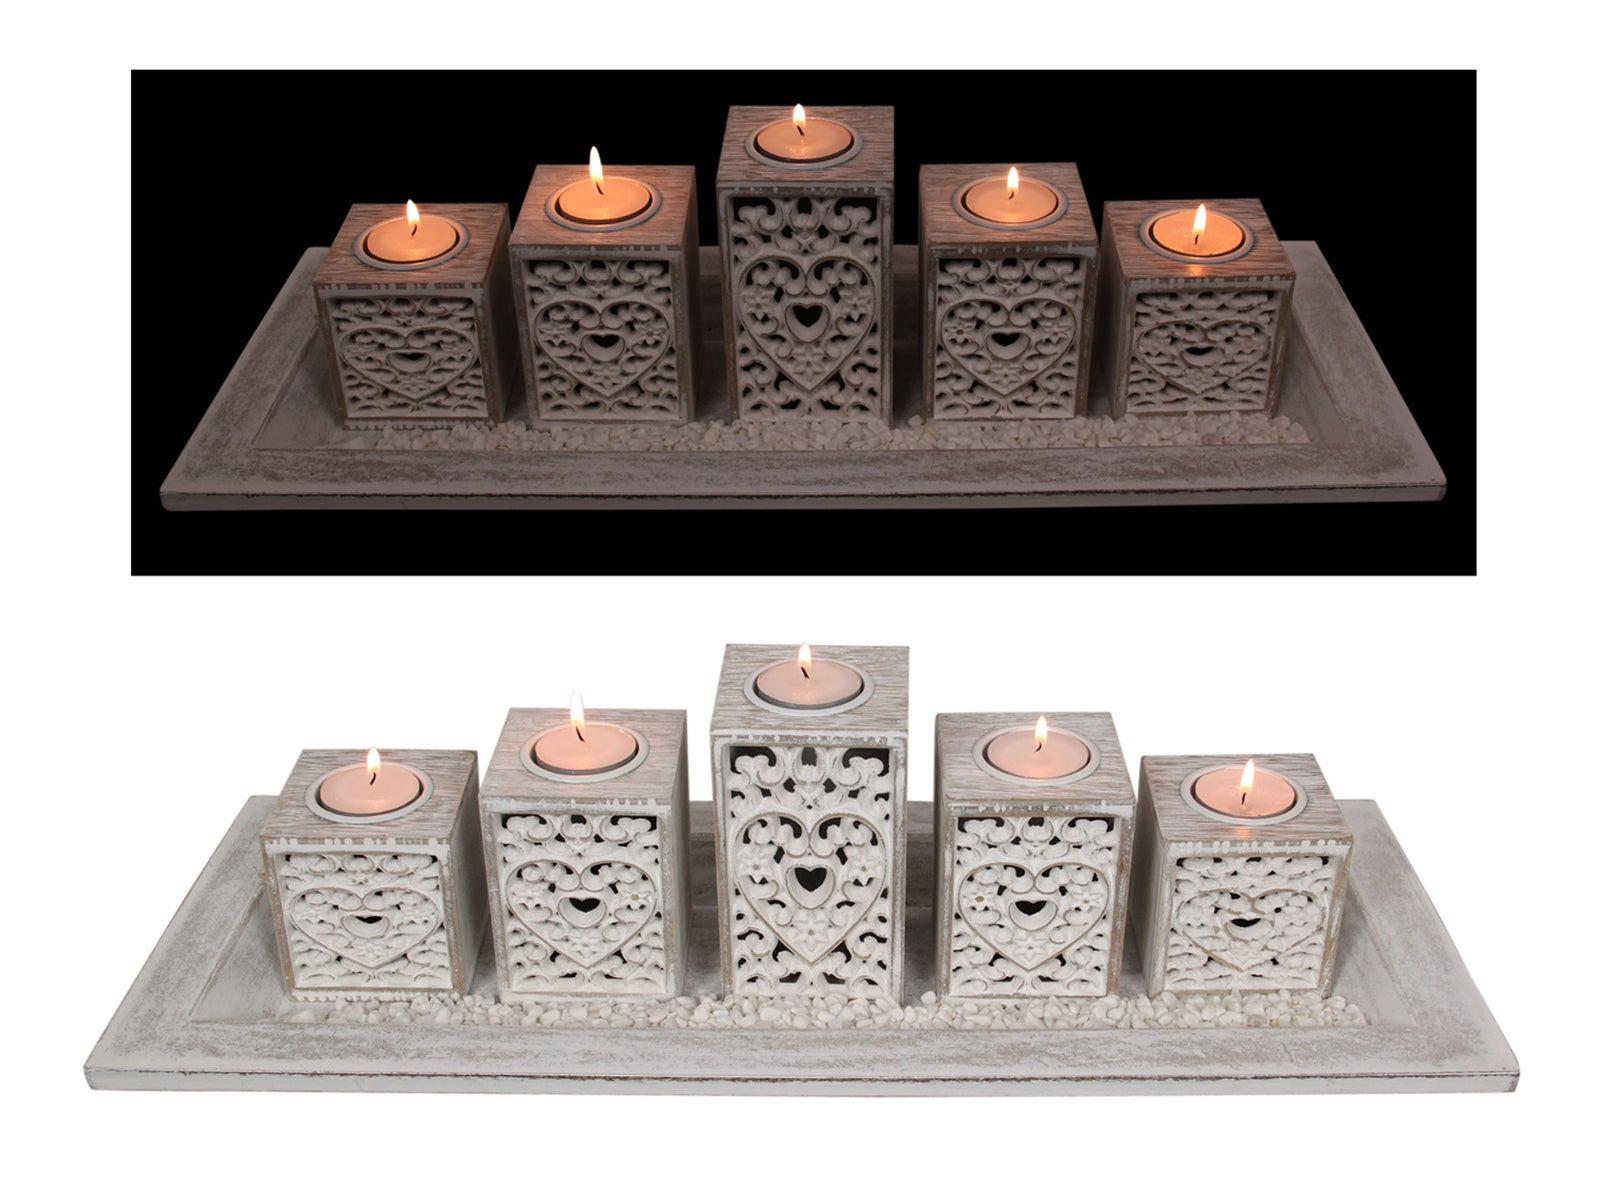 1pce 50cm Heart Filigree 5pce Candle Holder in Gift Box Boho Style